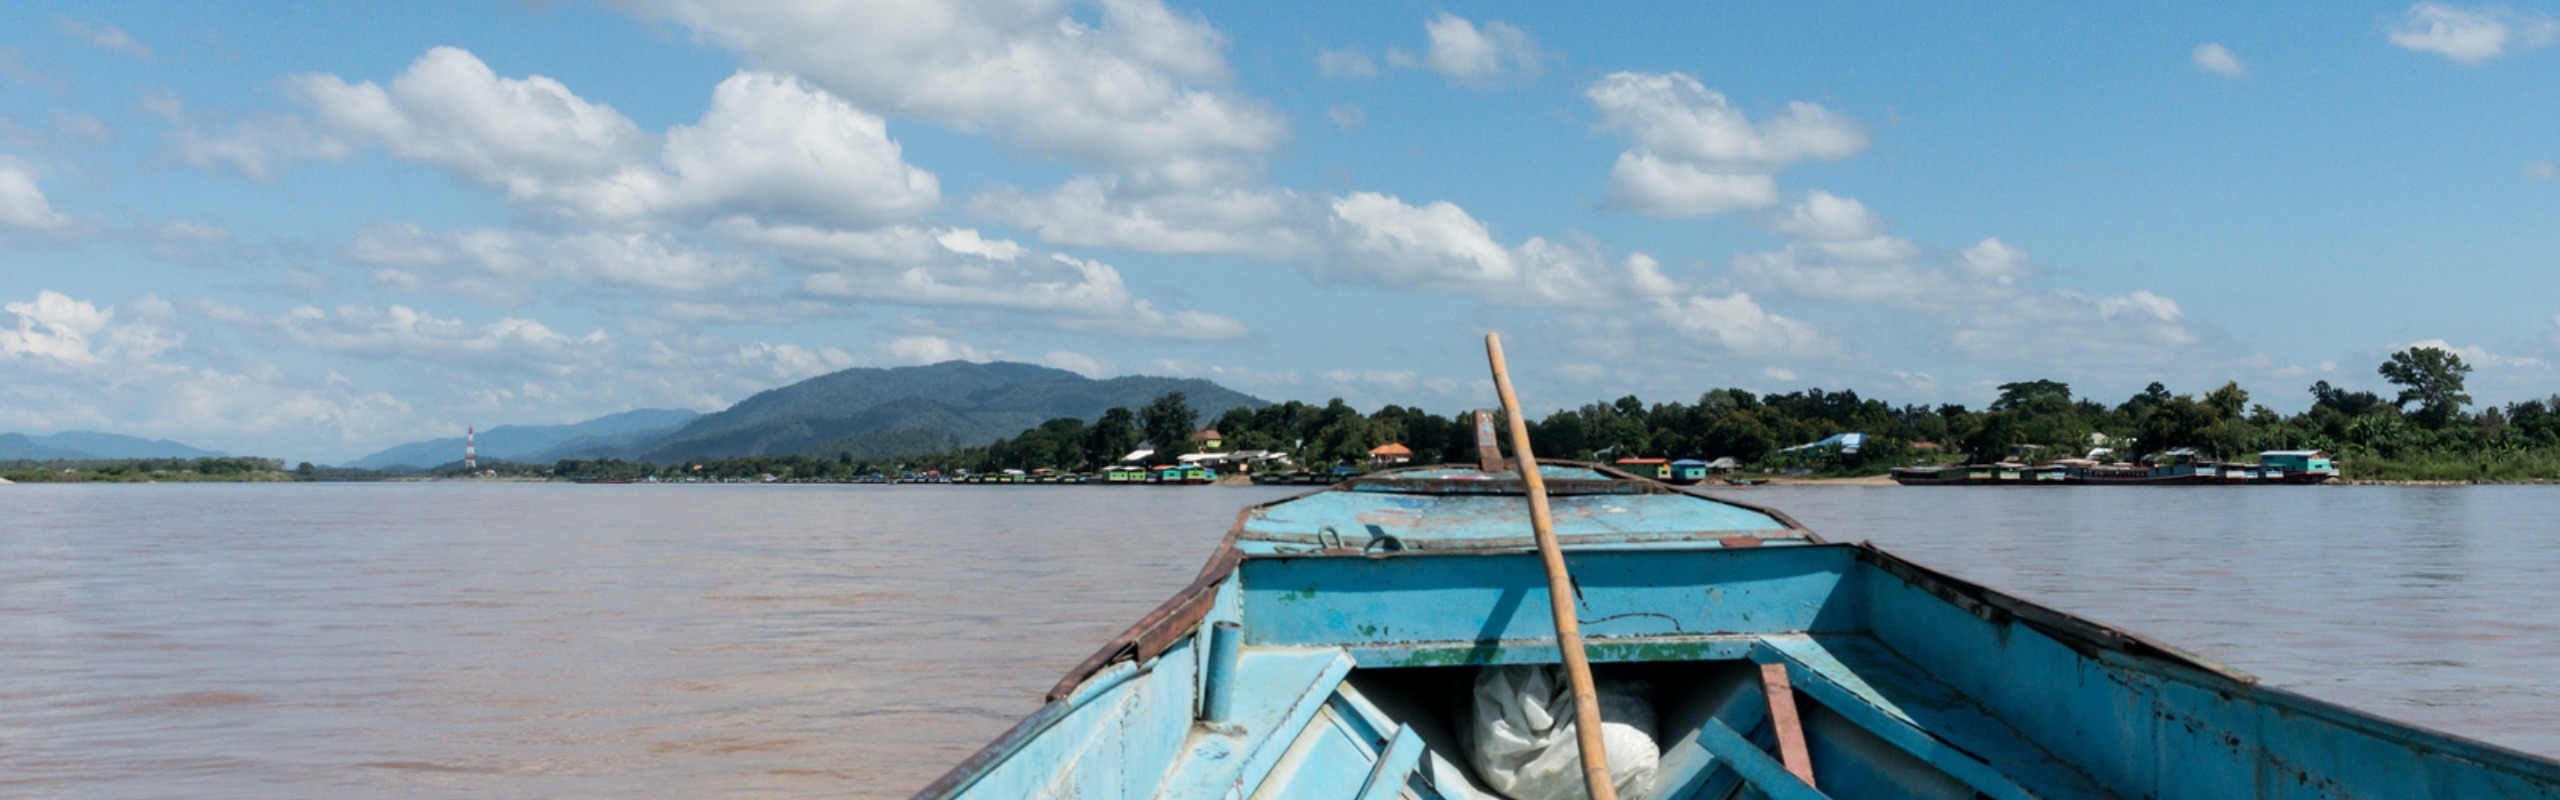 Mekong Delta Travel Guide - 6 Things You Need to Know